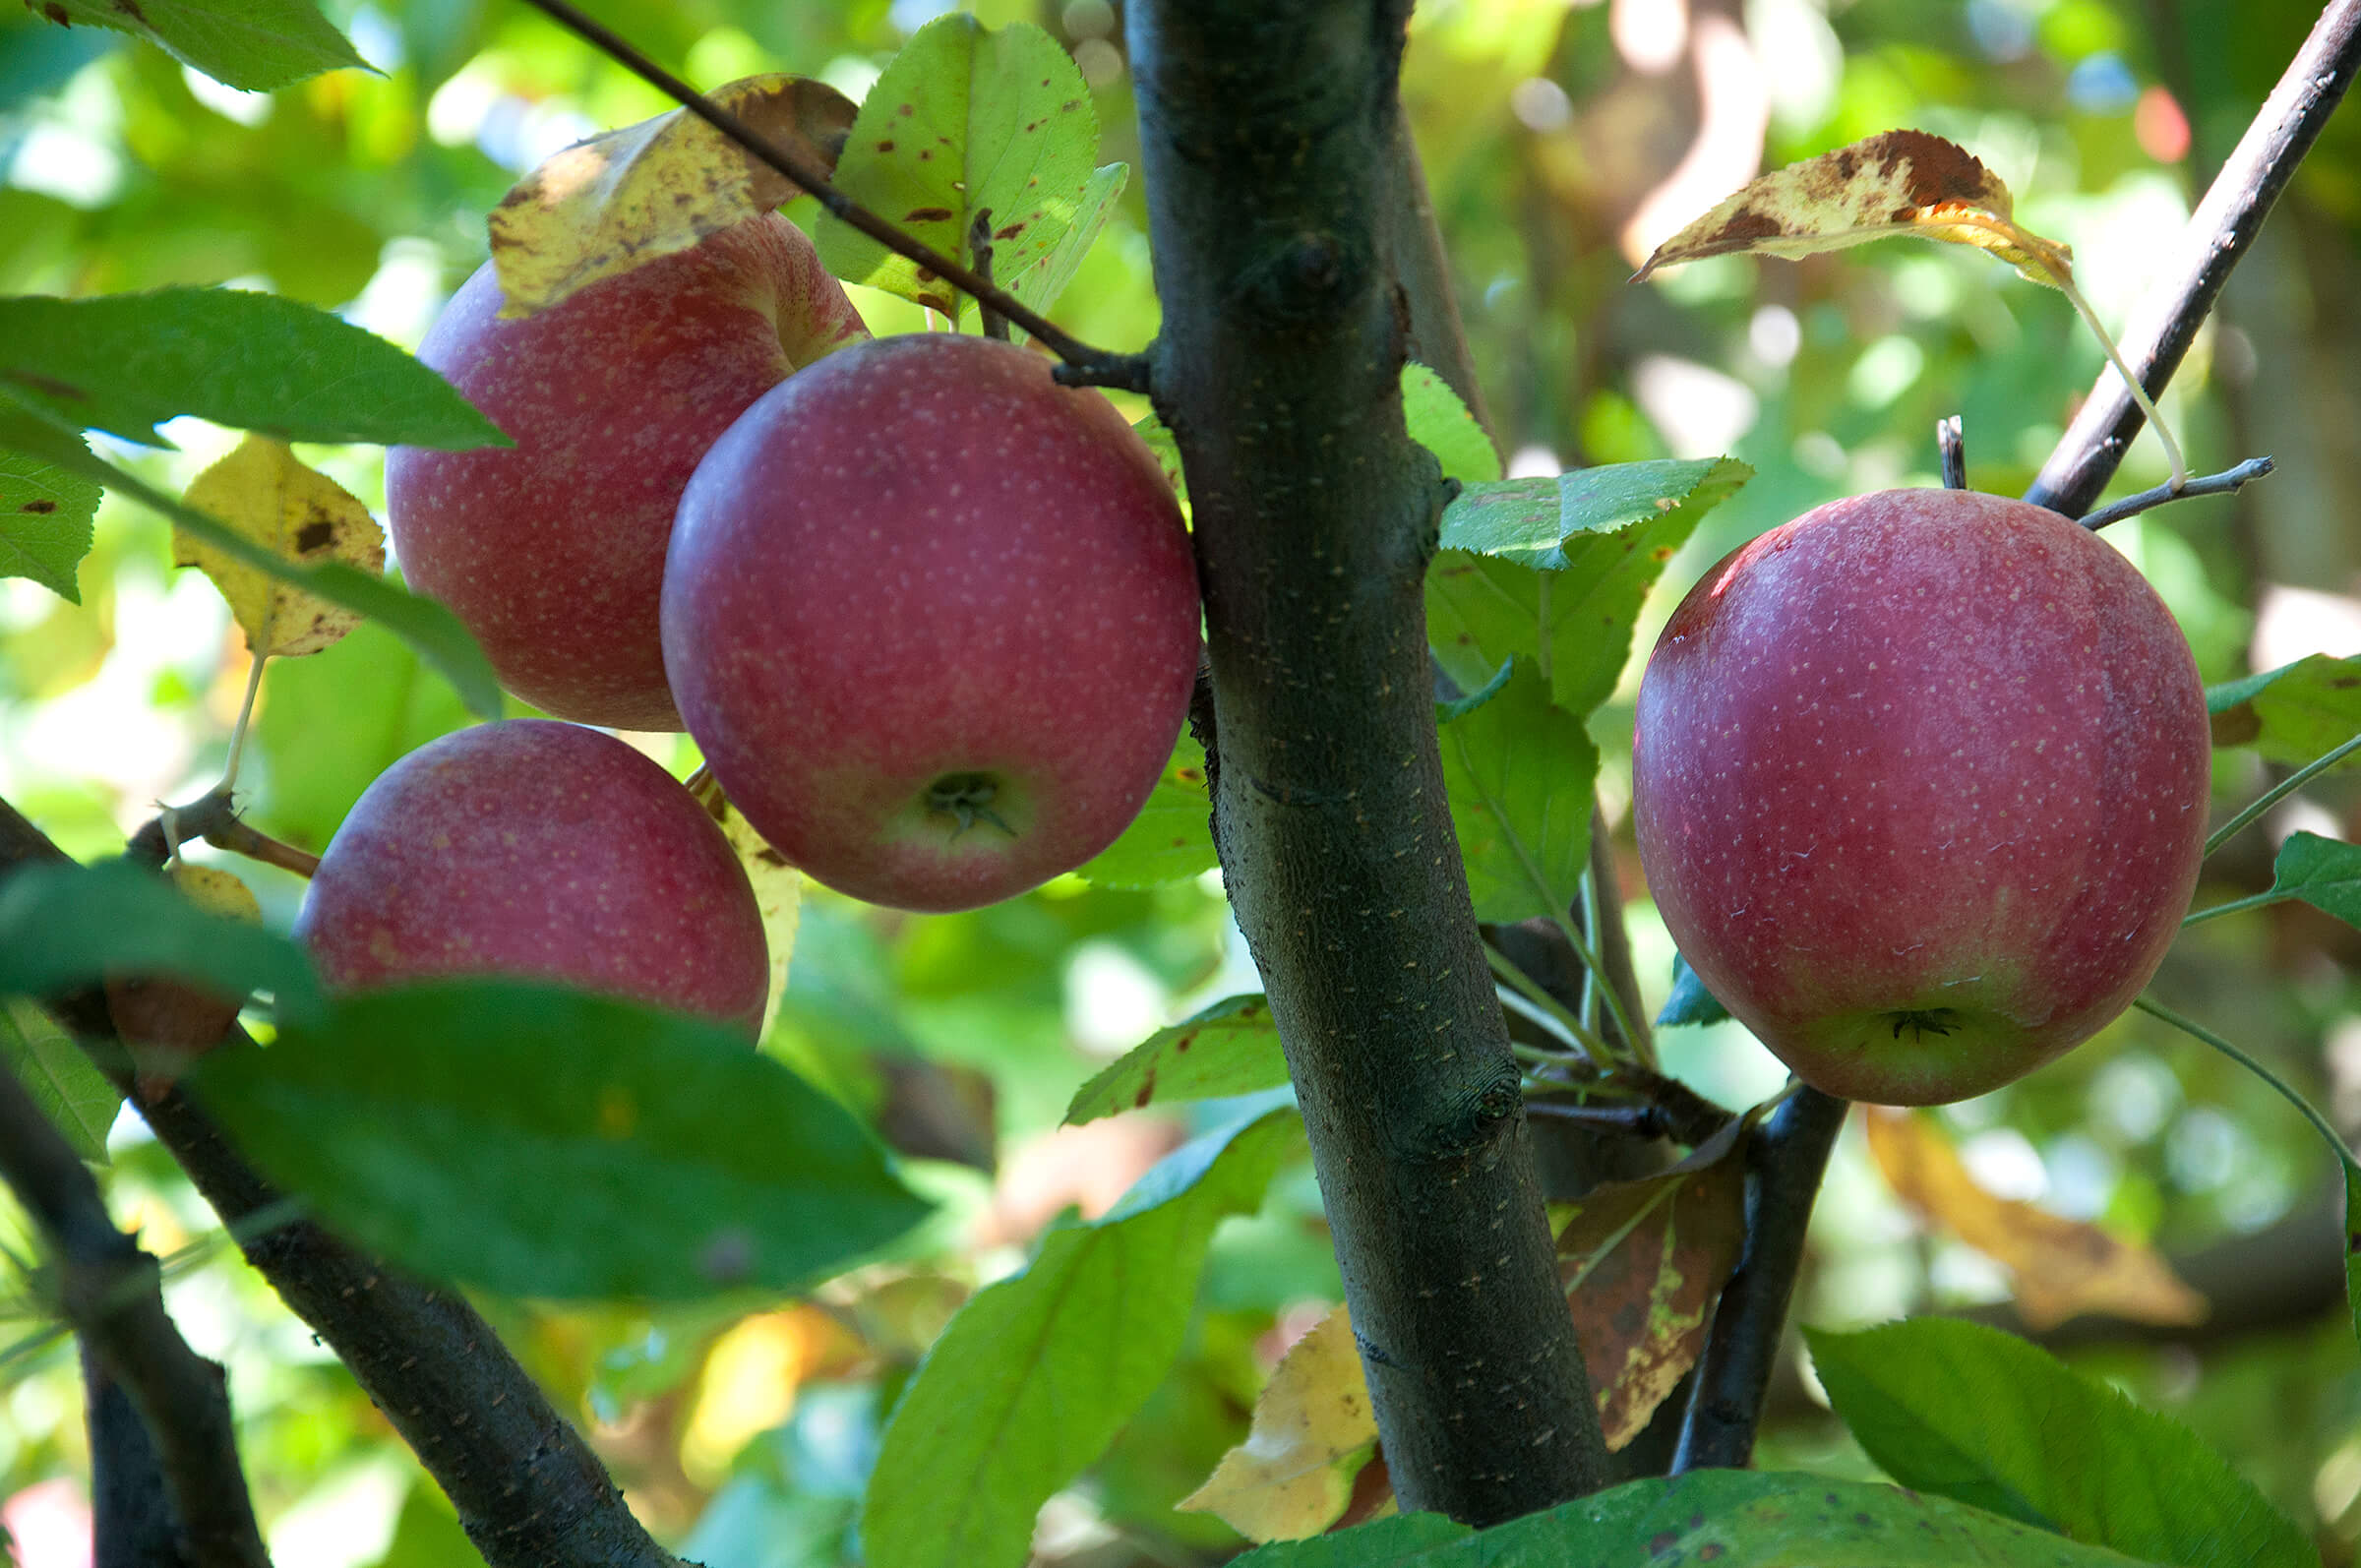 Apple Trees Bear More Fruit When Surrounded By Good